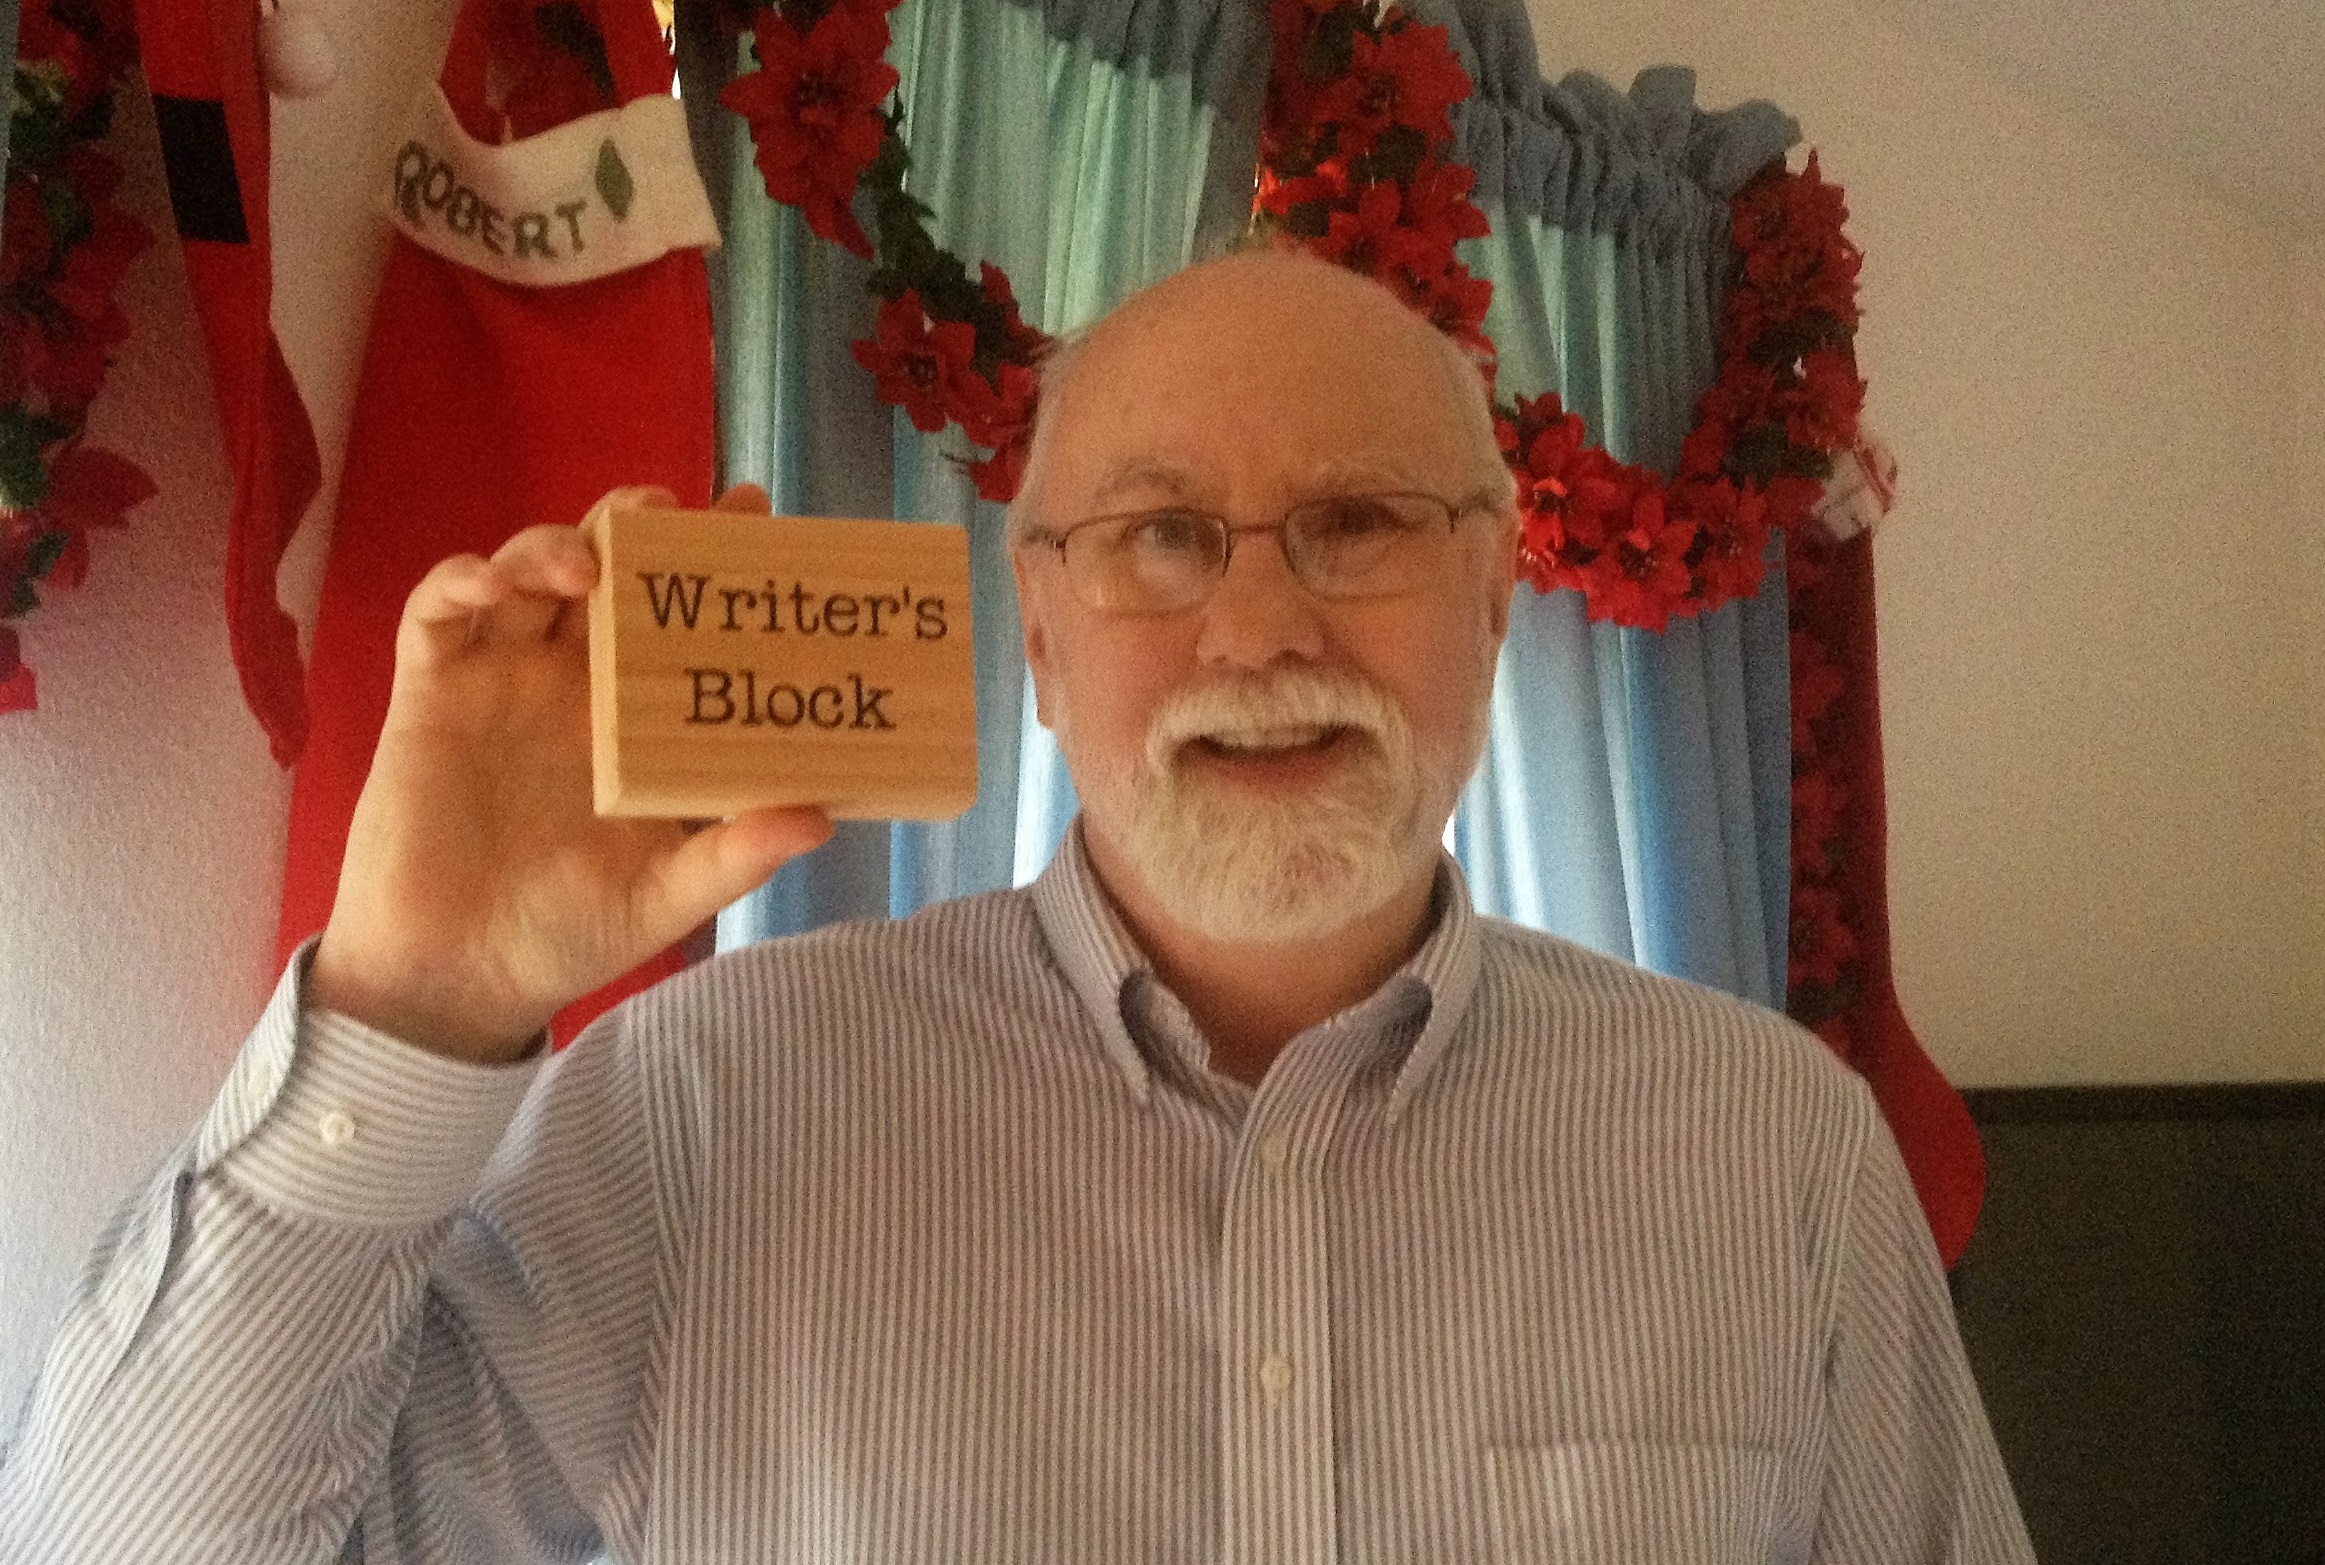 Kyle gets Writers Block as a Christmas present from his family